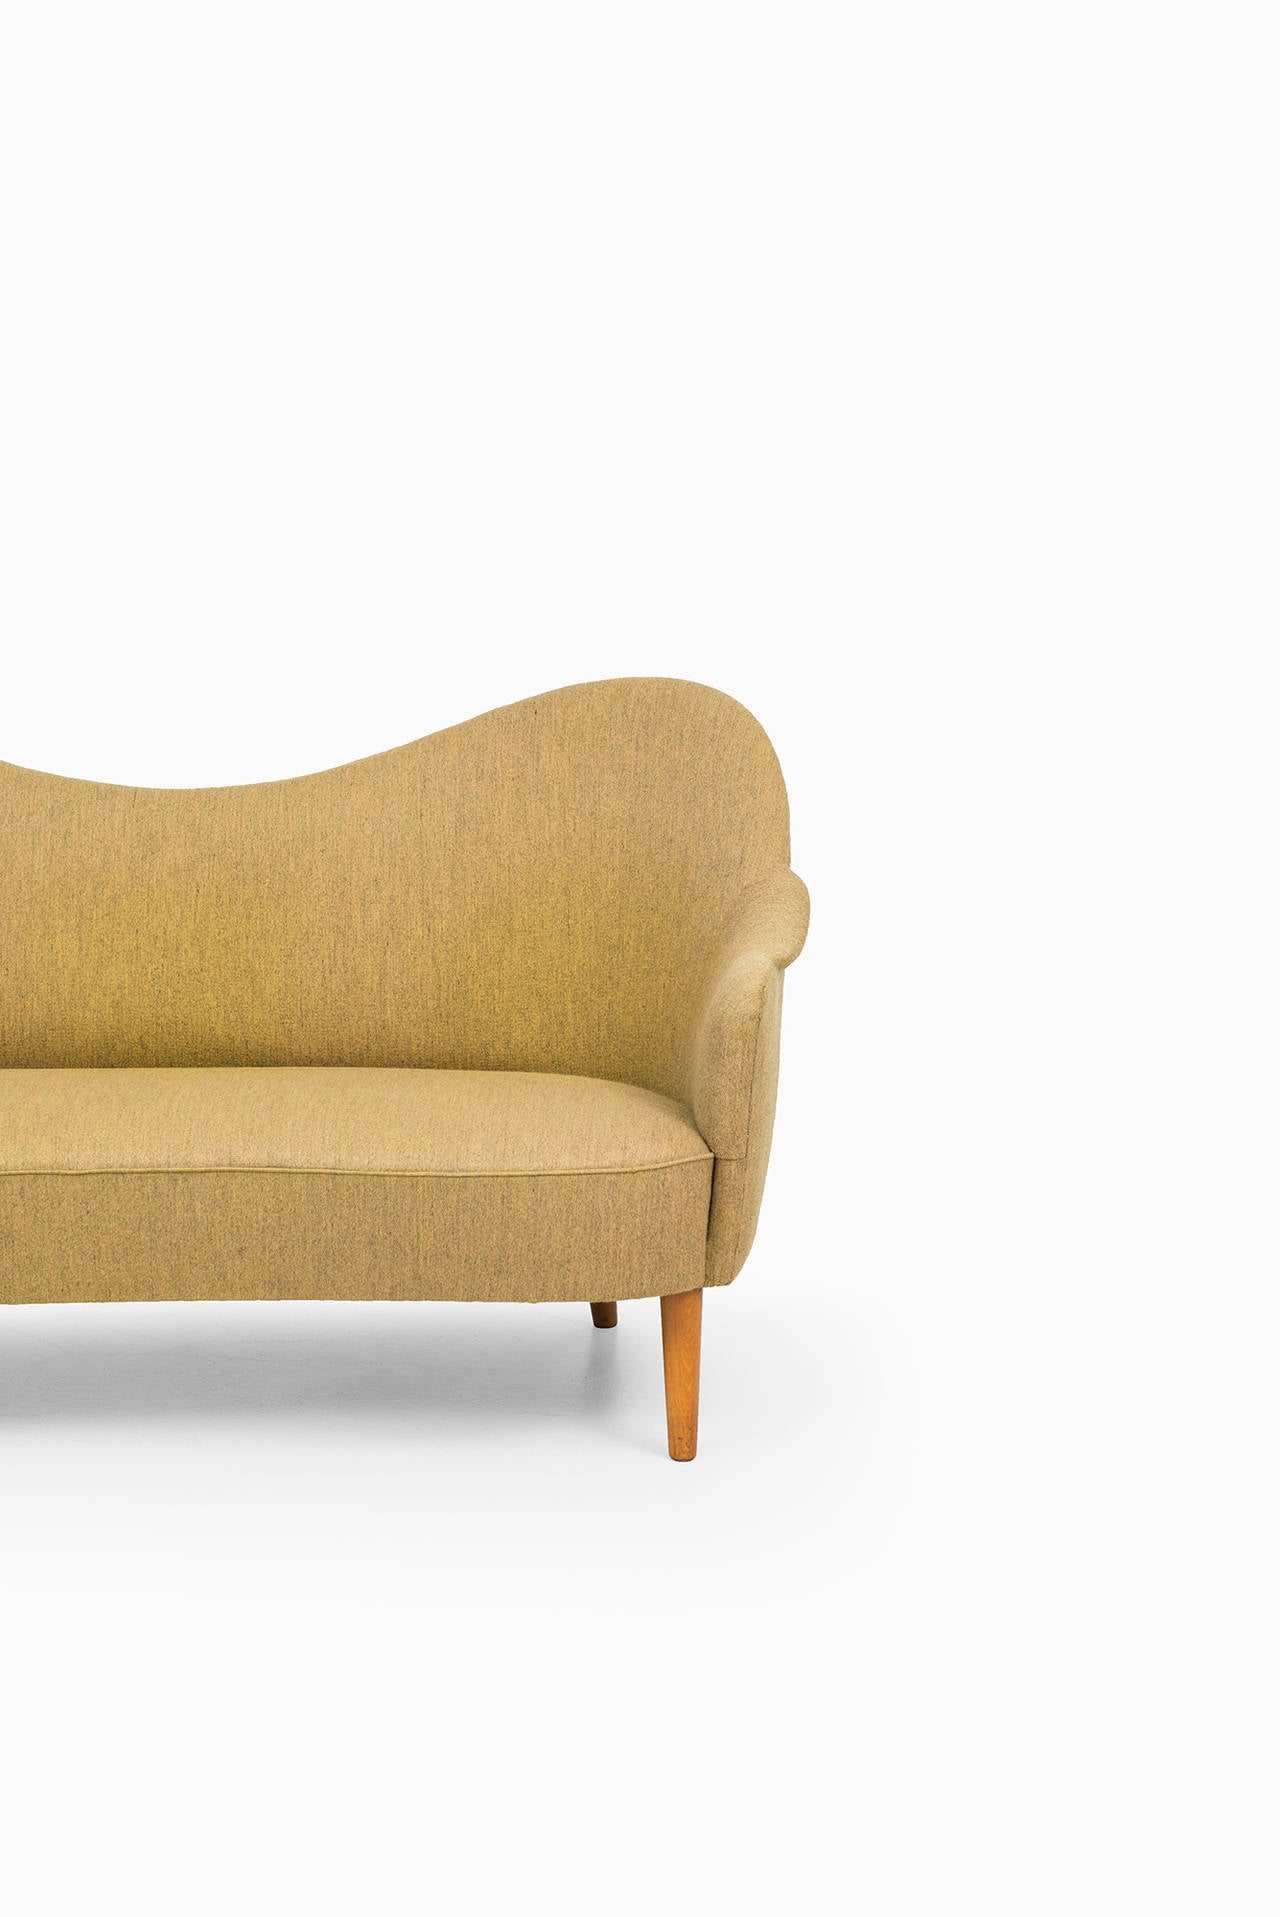 Carl malmsten samspel sofa by o h sj gren in sweden at 1stdibs Carl malmsten sofa